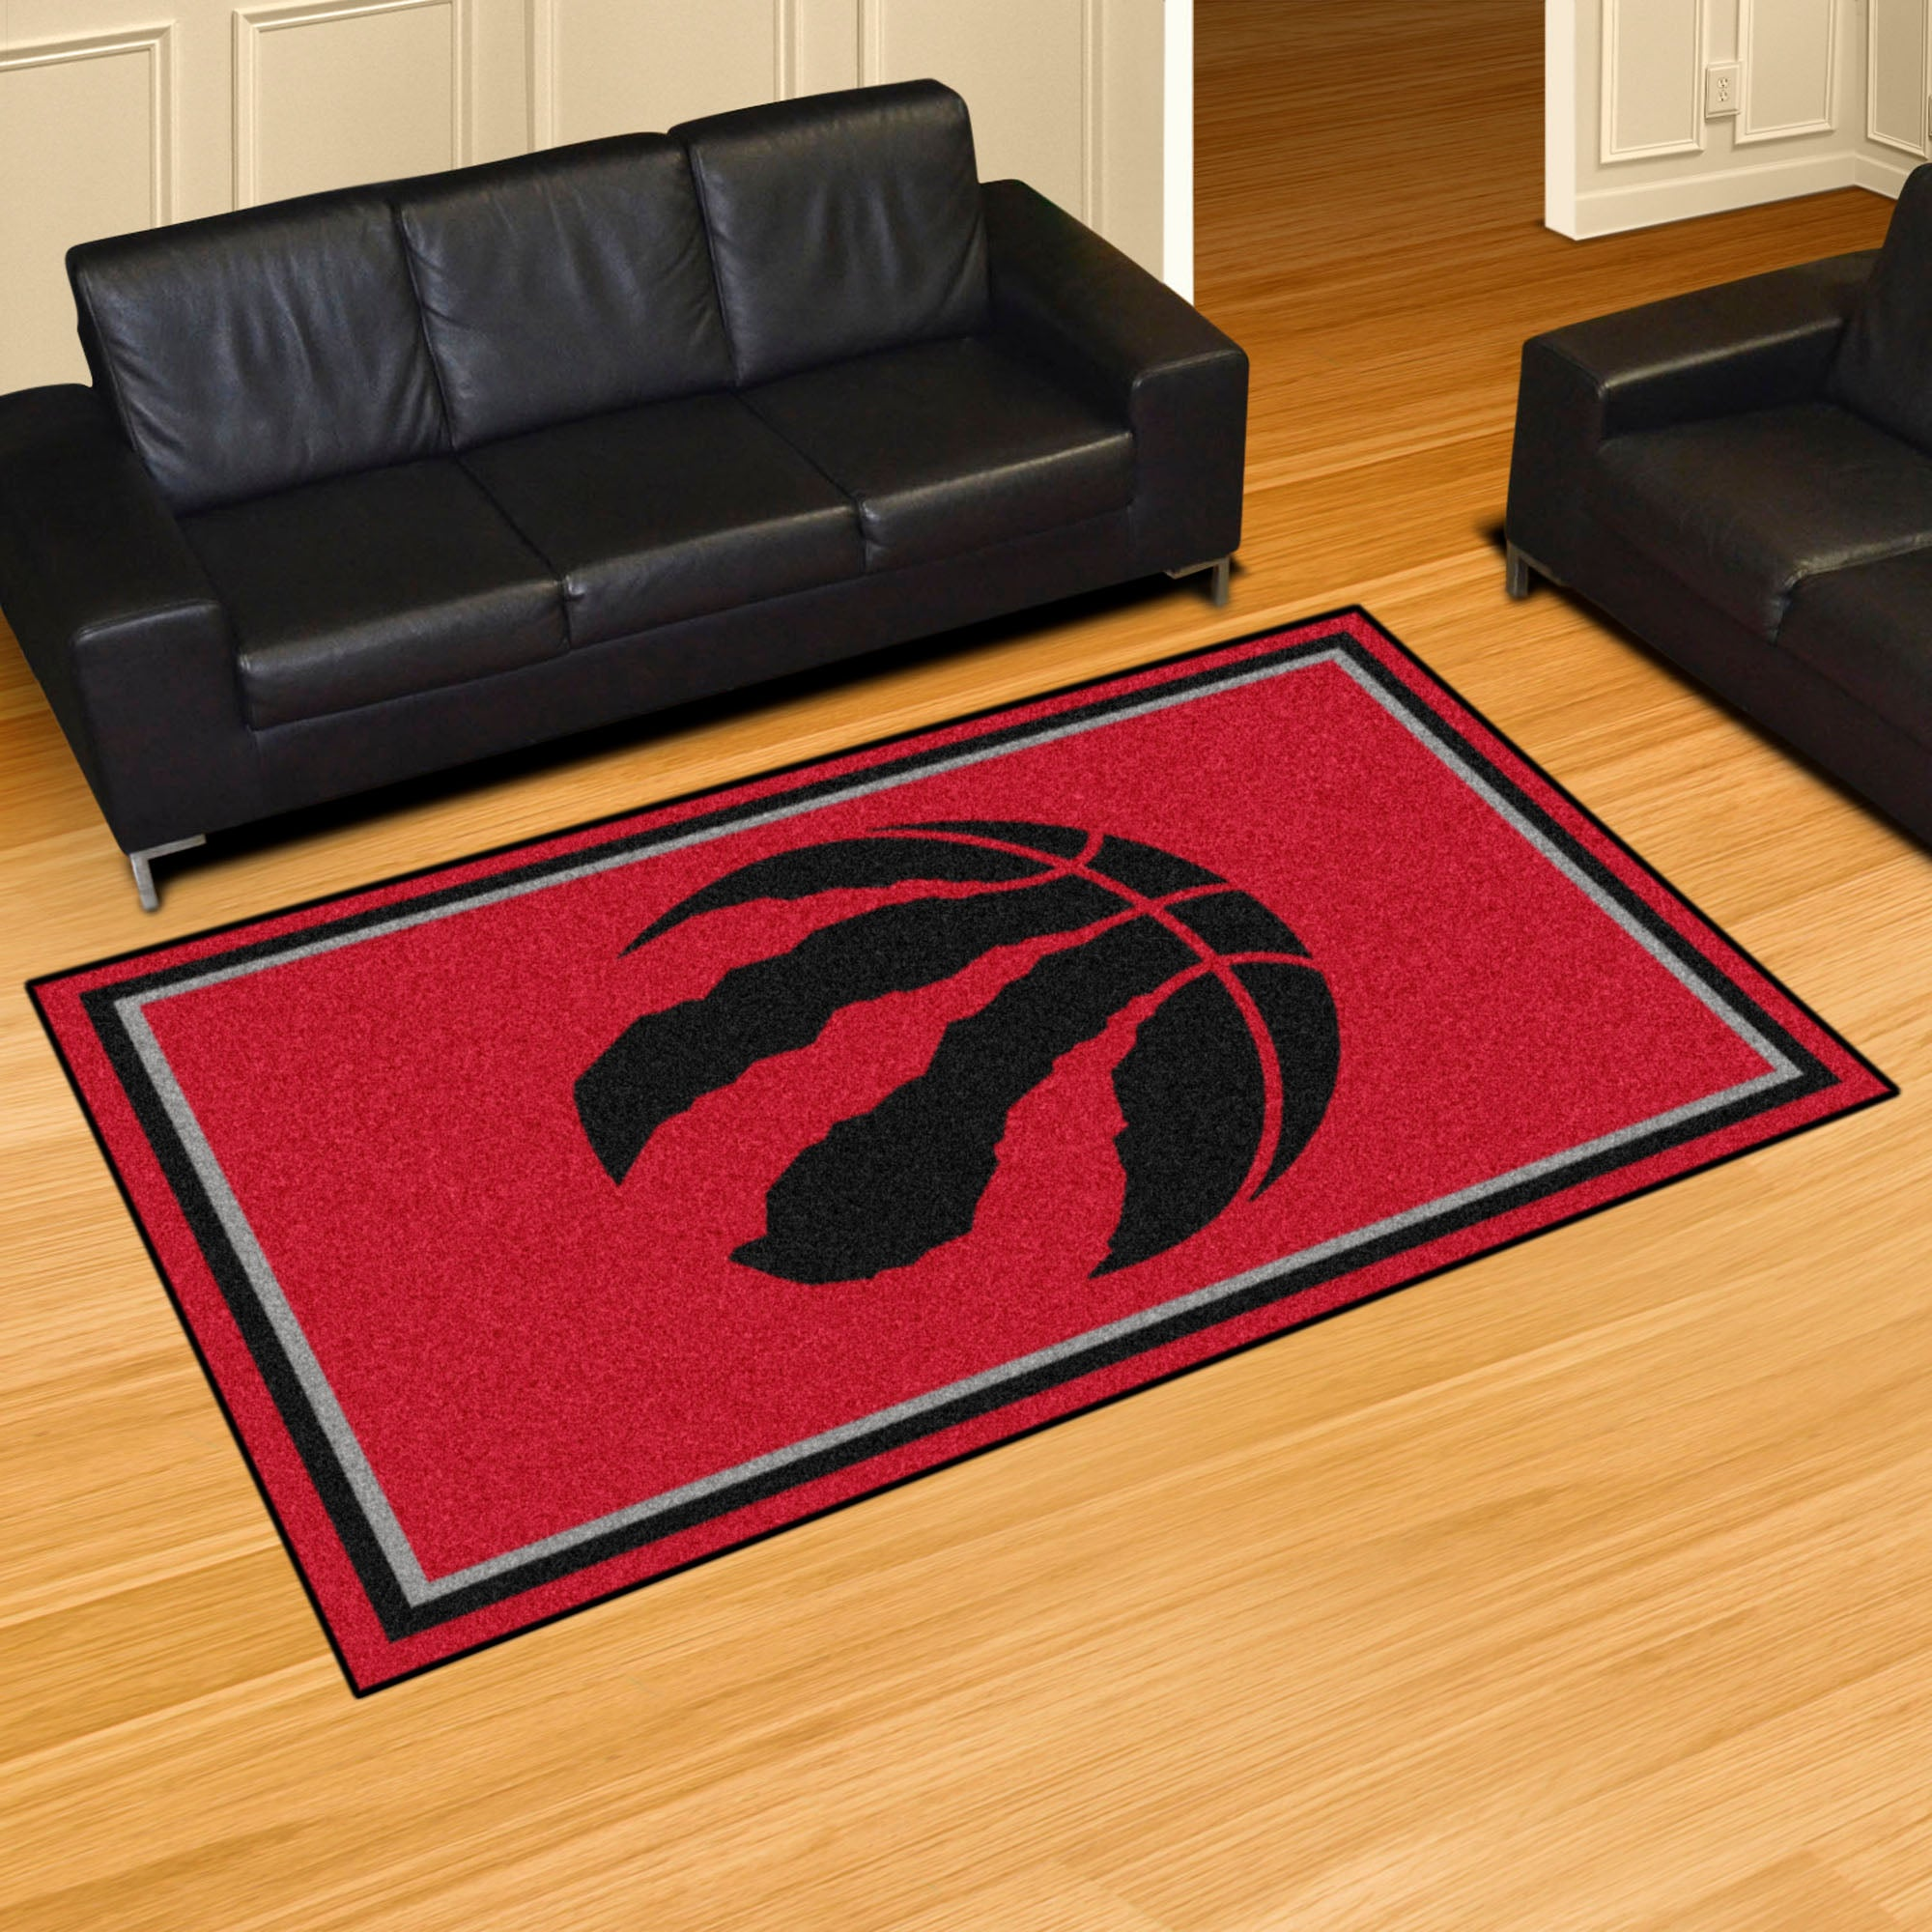 Toronto Raptors  NBA Area Rug - Fan Rugs